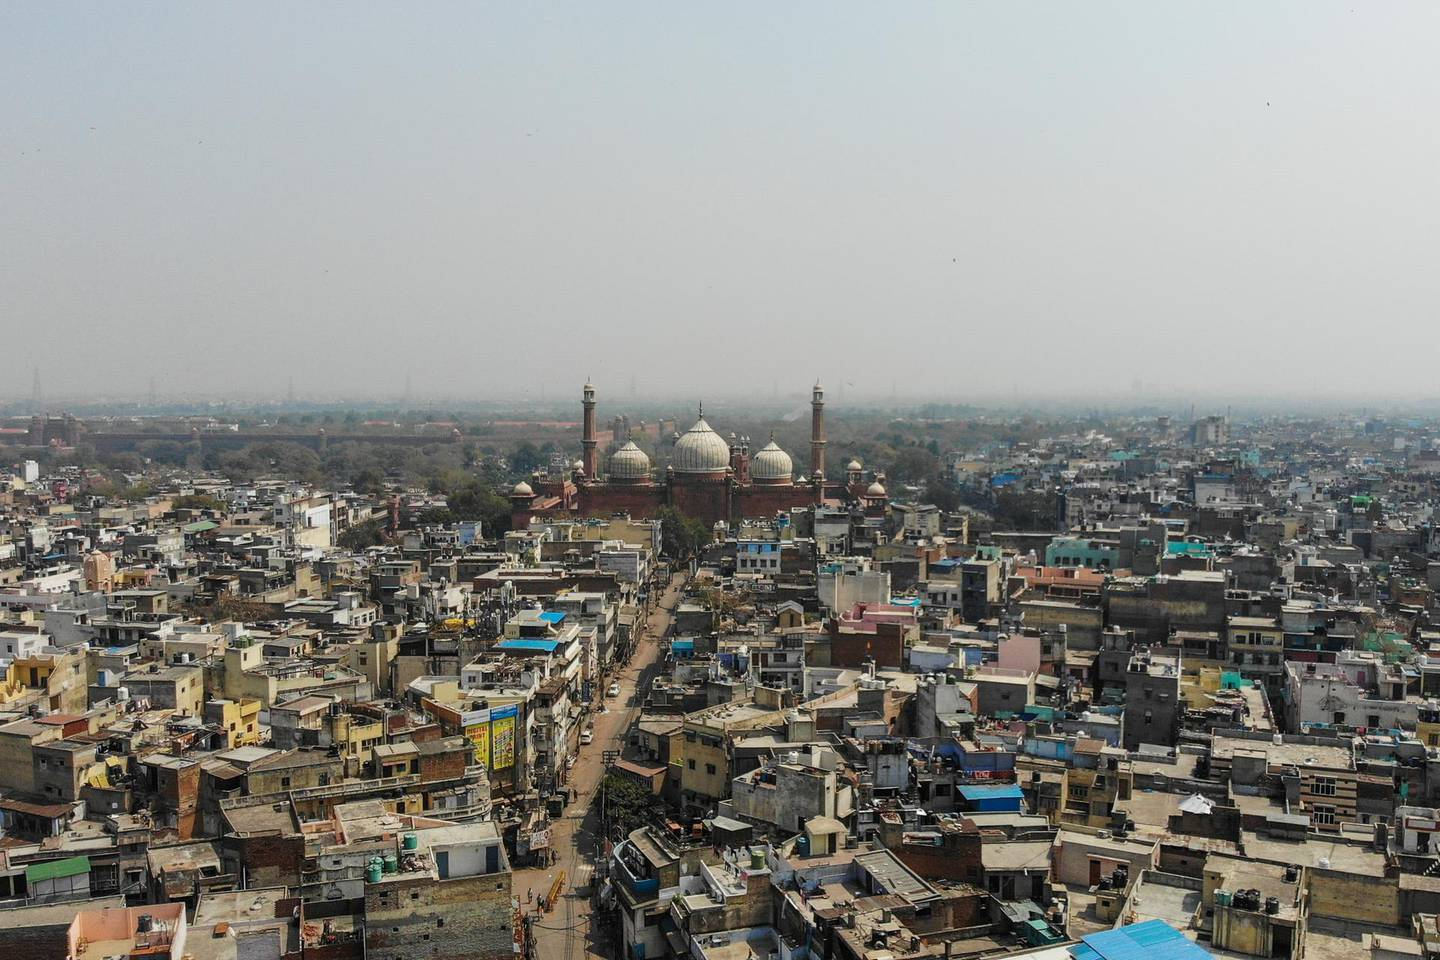 This aerial picture taken on March 22, 2020, shows a deserted road near the Jama Masjid mosque during a one-day nationwide Janata (civil) curfew imposed as a preventive measure against the COVID-19 coronavirus in the old quarters of New Delhi. - Nearly one billion people around the world were confined to their homes, as the coronavirus death toll crossed 13,000 and factories were shut in worst-hit Italy after another single-day fatalities record. (Photo by Jewel SAMAD / AFP)